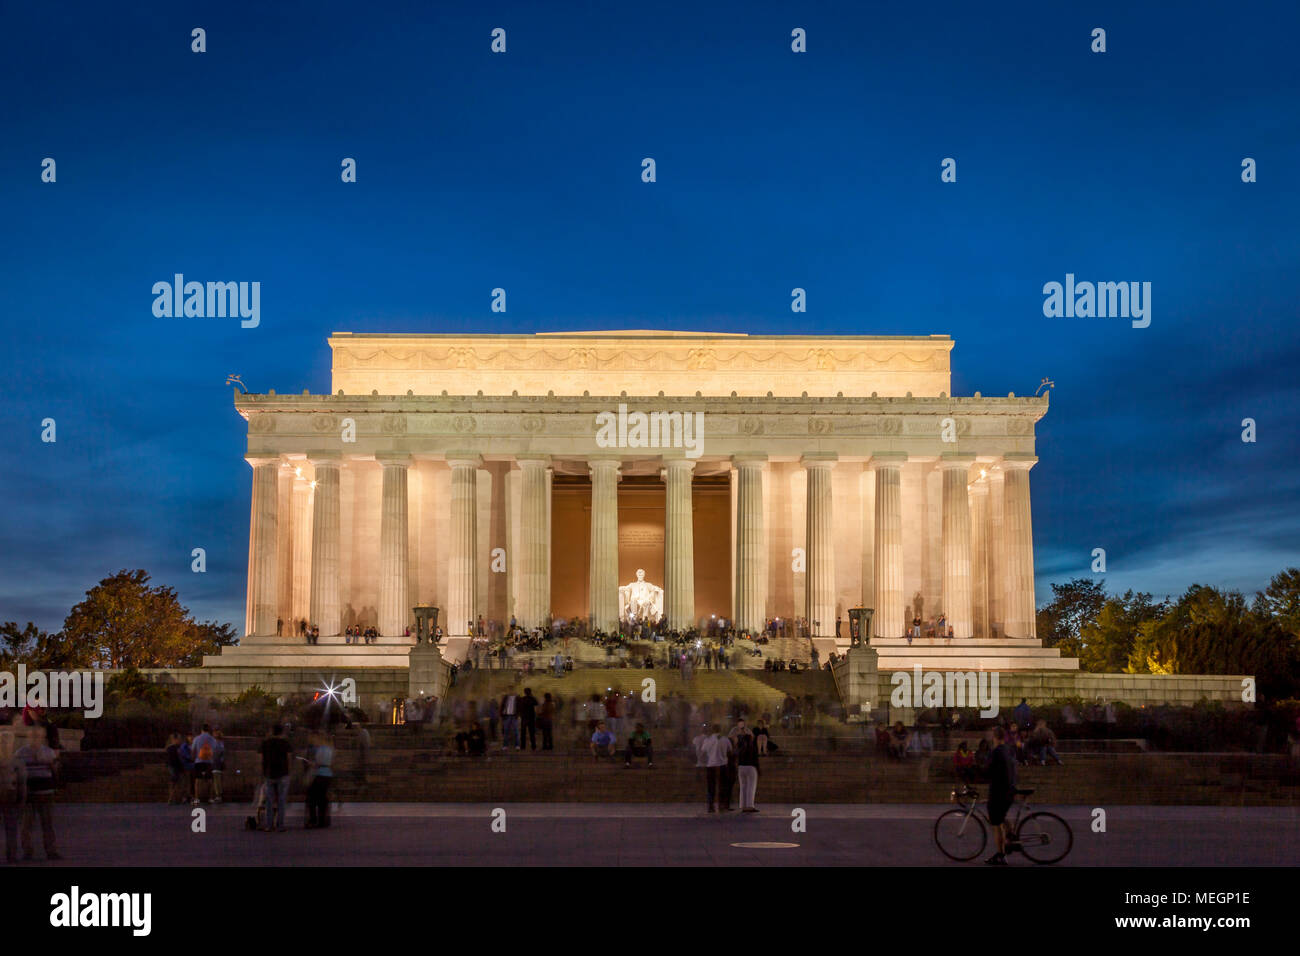 Tourists at the Lincoln Memorial at twilight, Washington, DC, USA - Stock Image